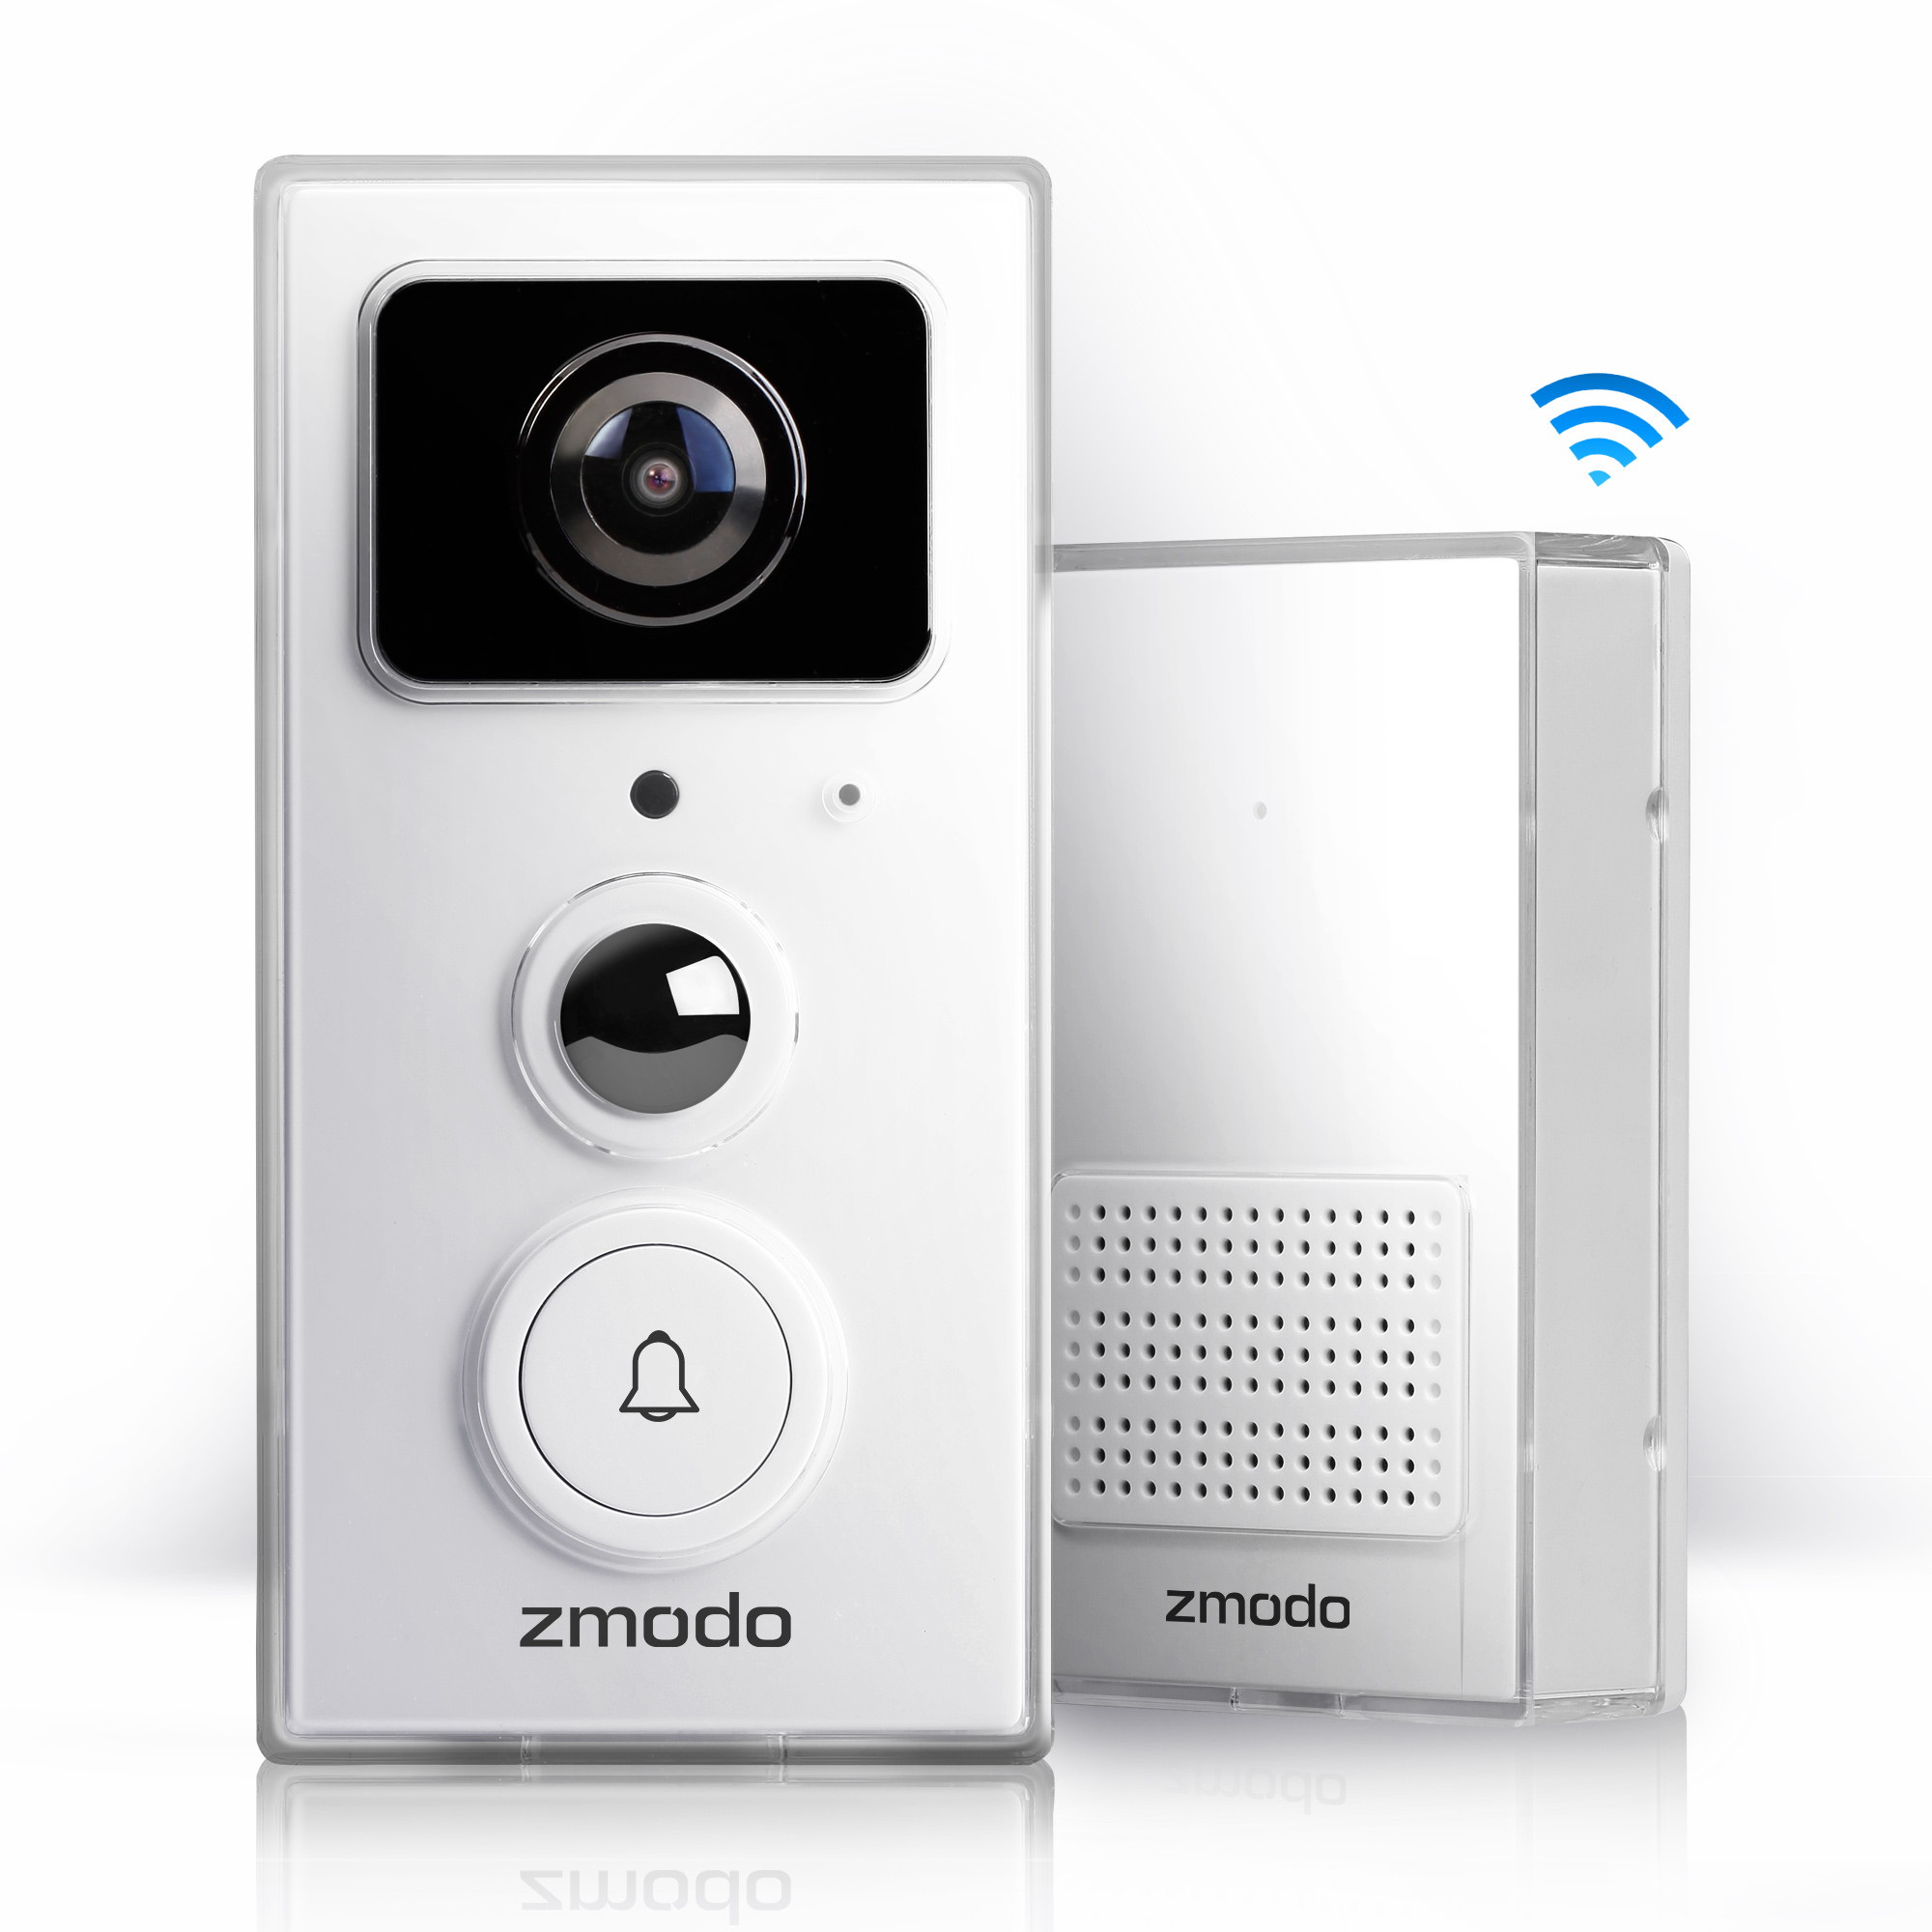 Zmodo Greet Universal Smart Video Doorbell/Door Chime with 1080p Full HD WiFi Night Vision Camera